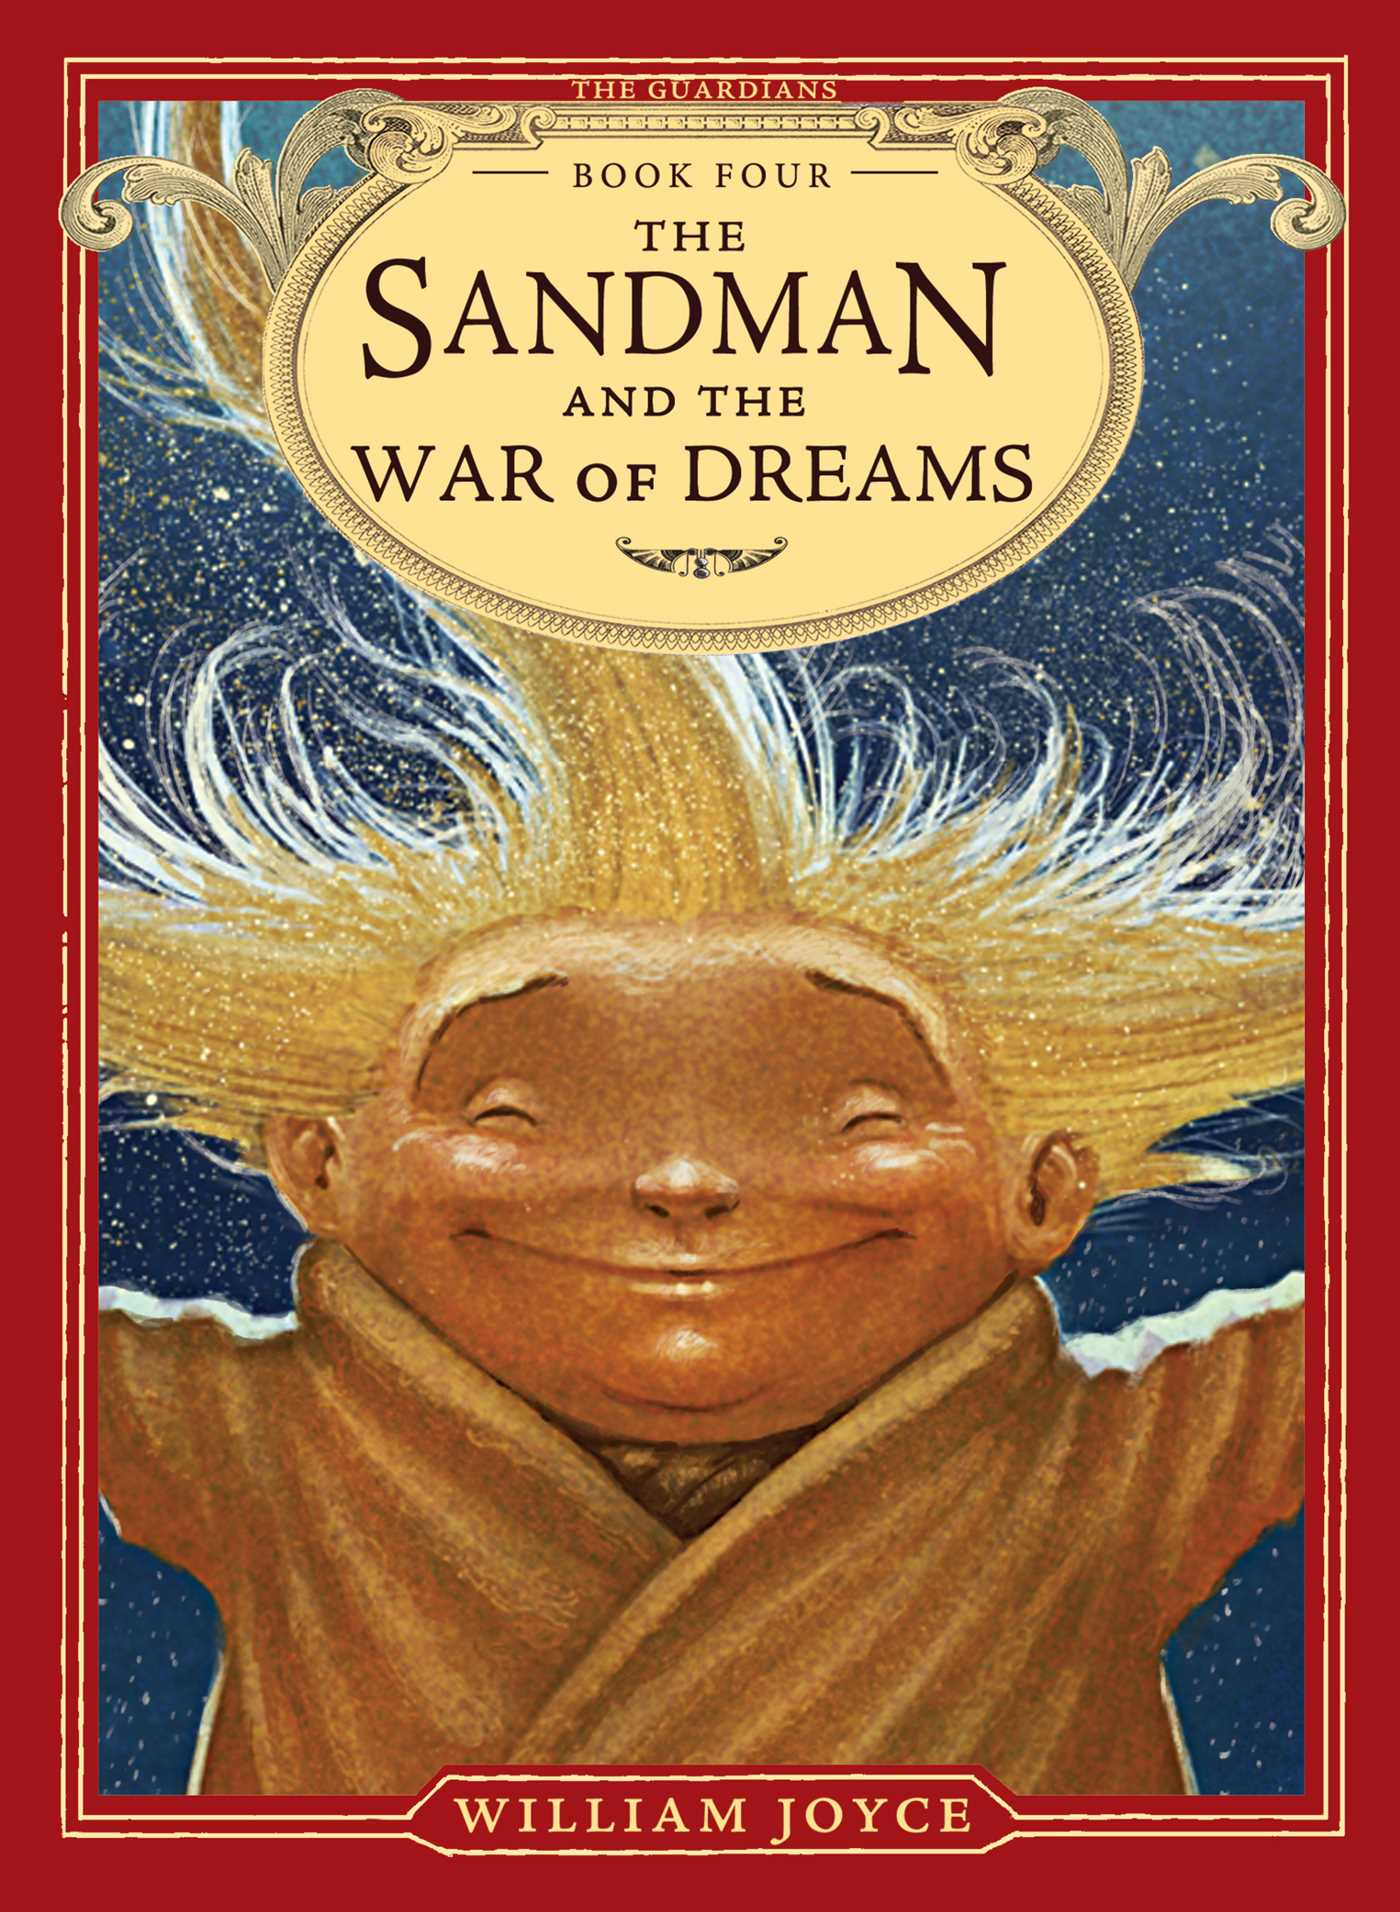 The sandman and the war of dreams 9781442430556 hr